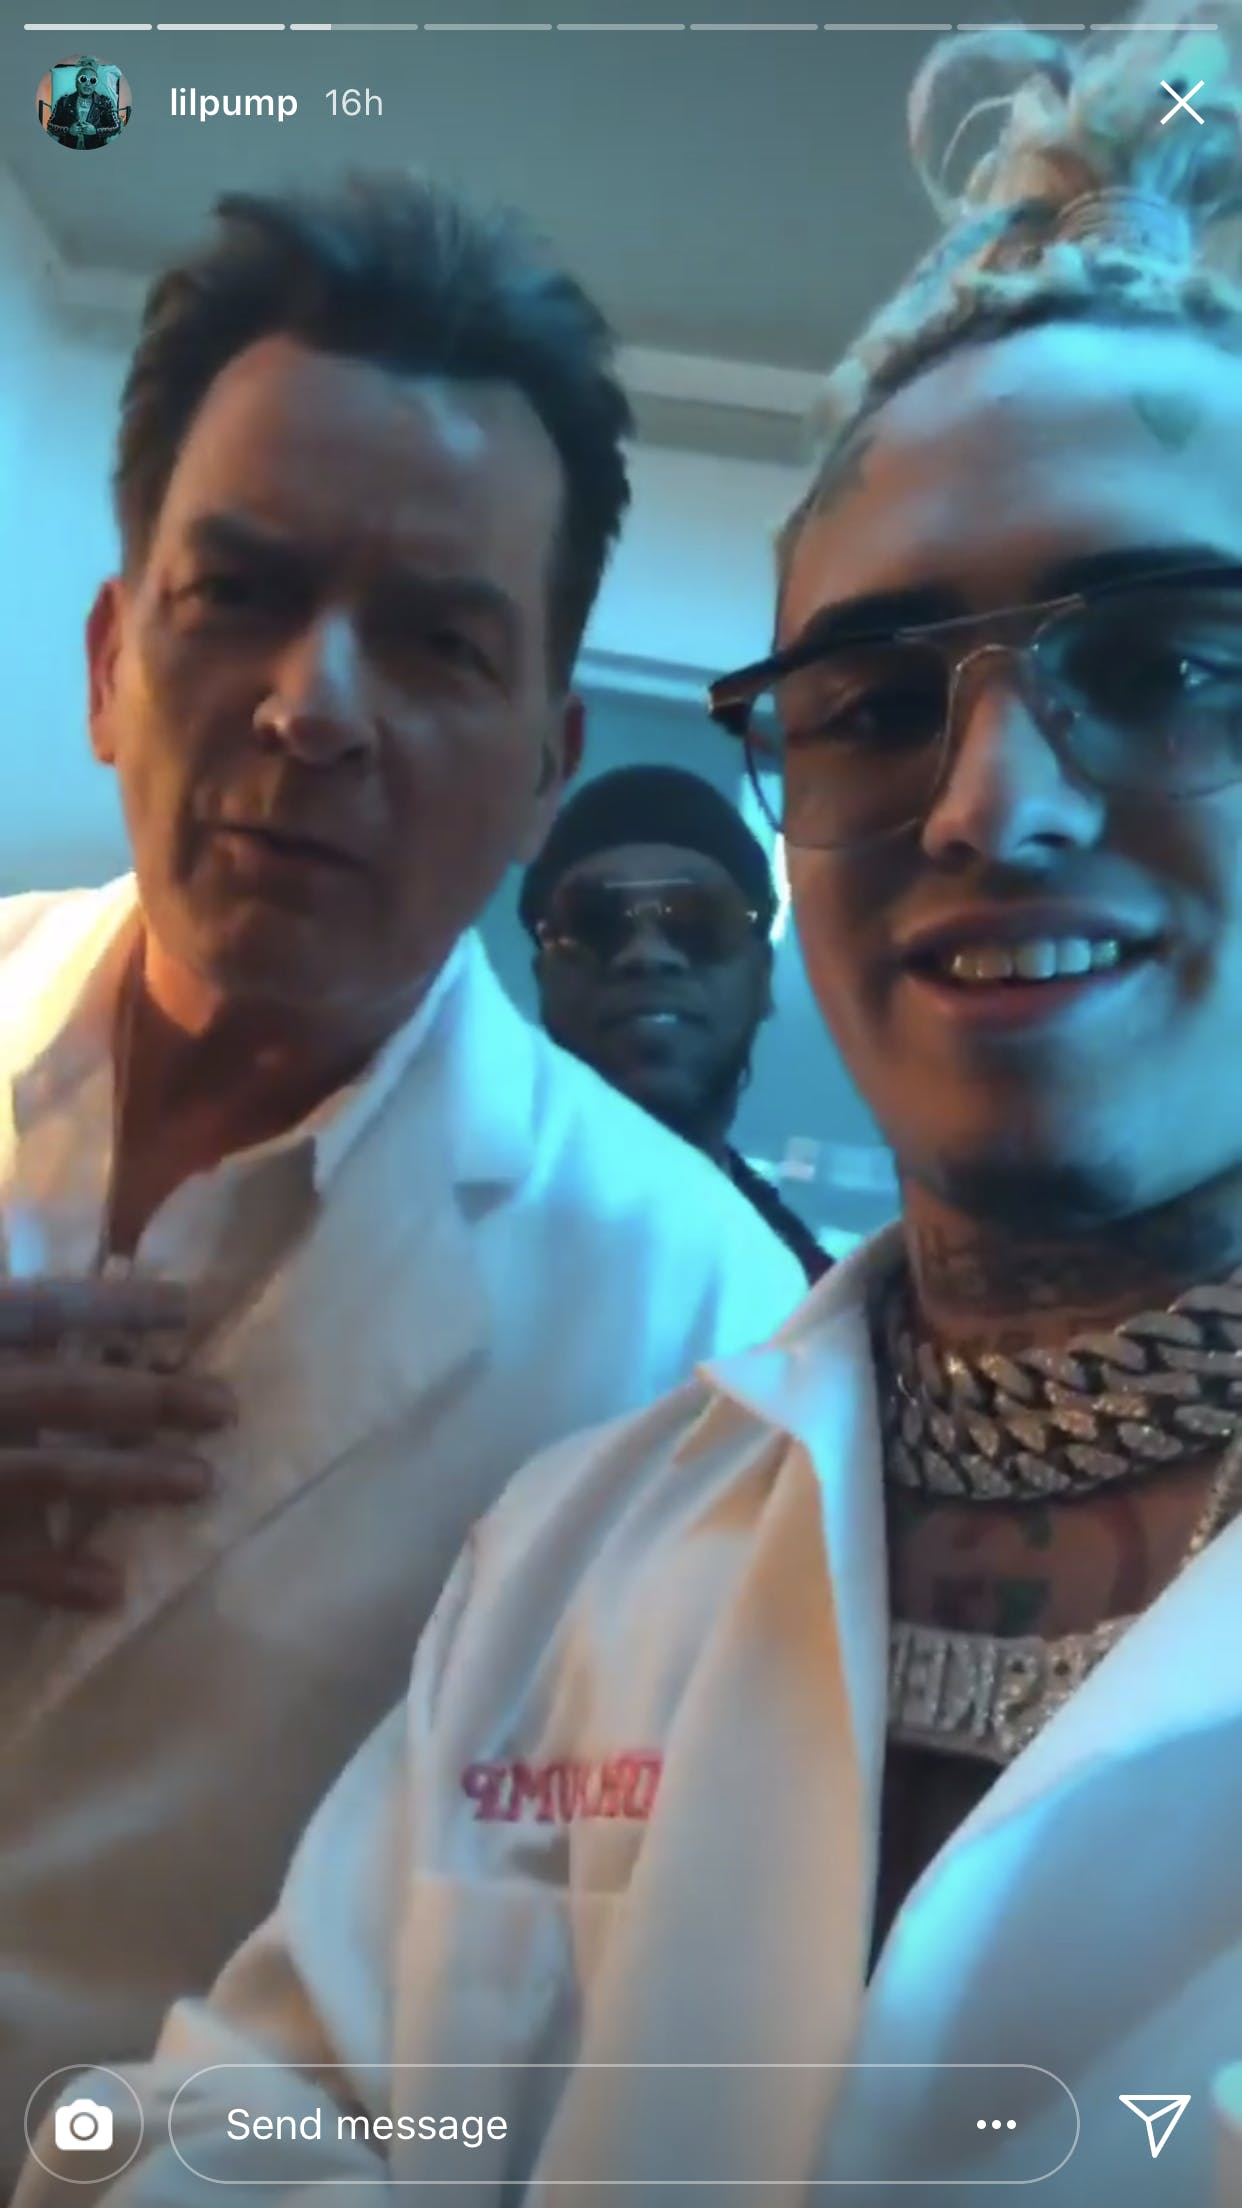 Lil Pump and Charlie Sheen